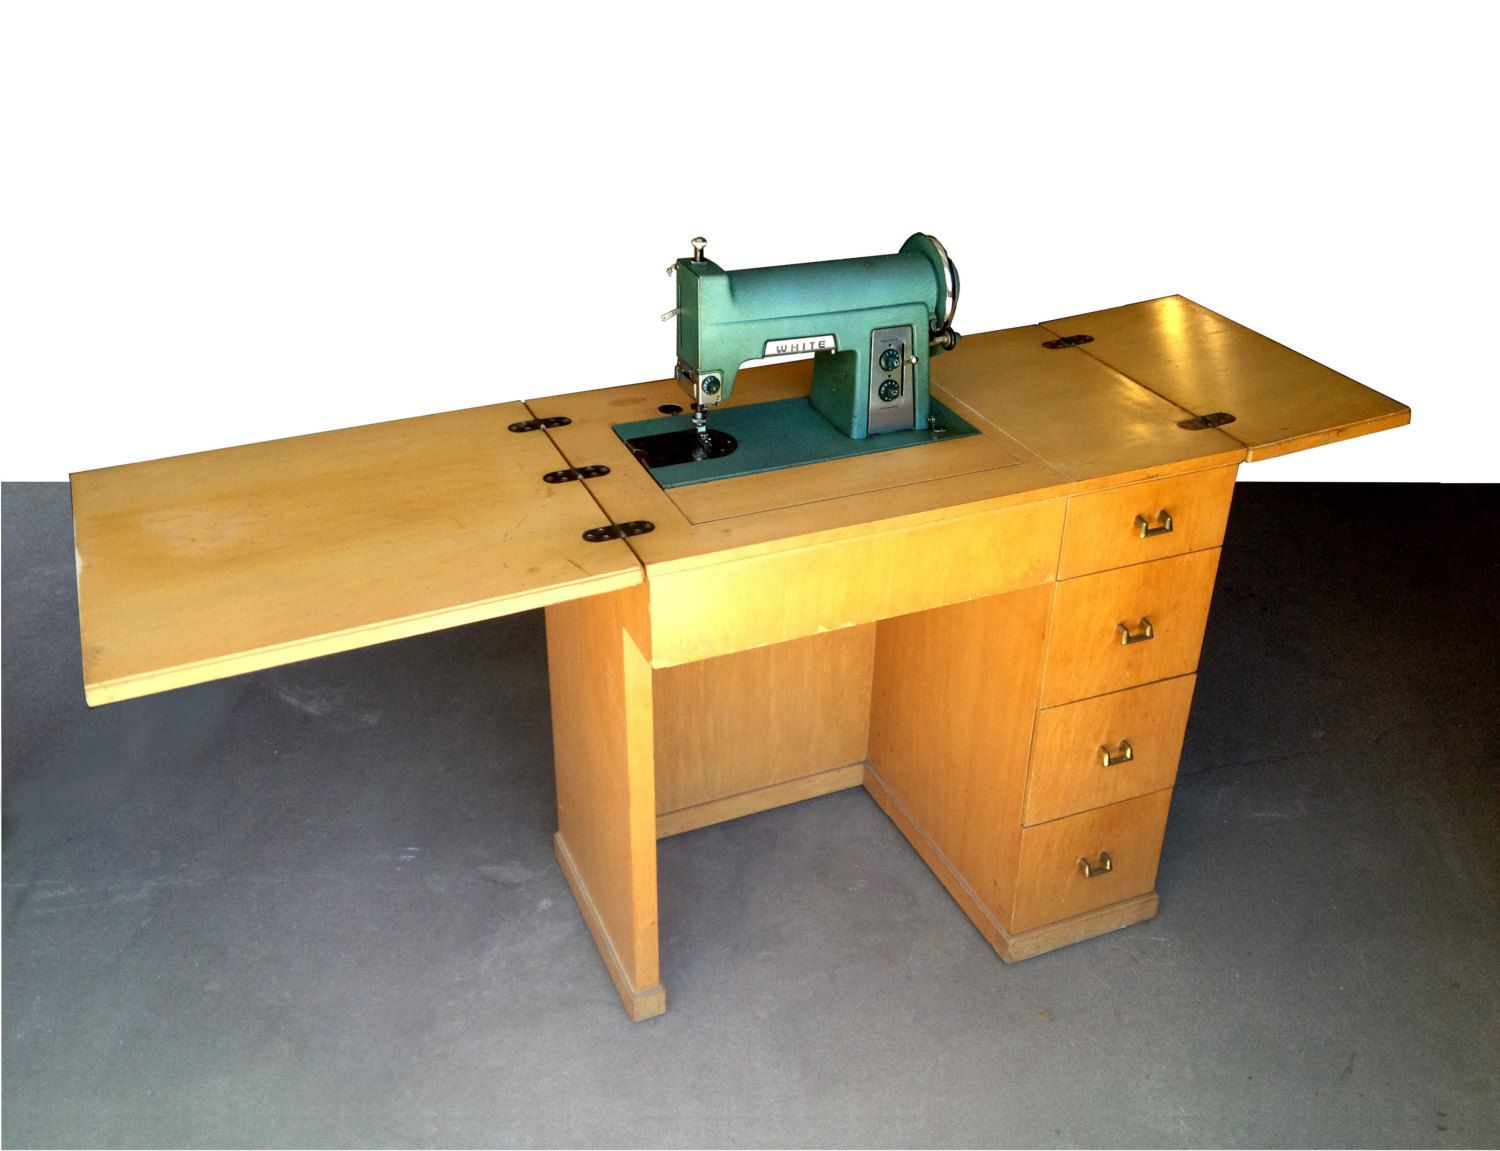 Popular Items For Natural Finish Oak Wood Sewing Table On Vintage Wood  Folding Sideboards With Storage Base Each Size Drawers As Well As Fold Out  Tables ...